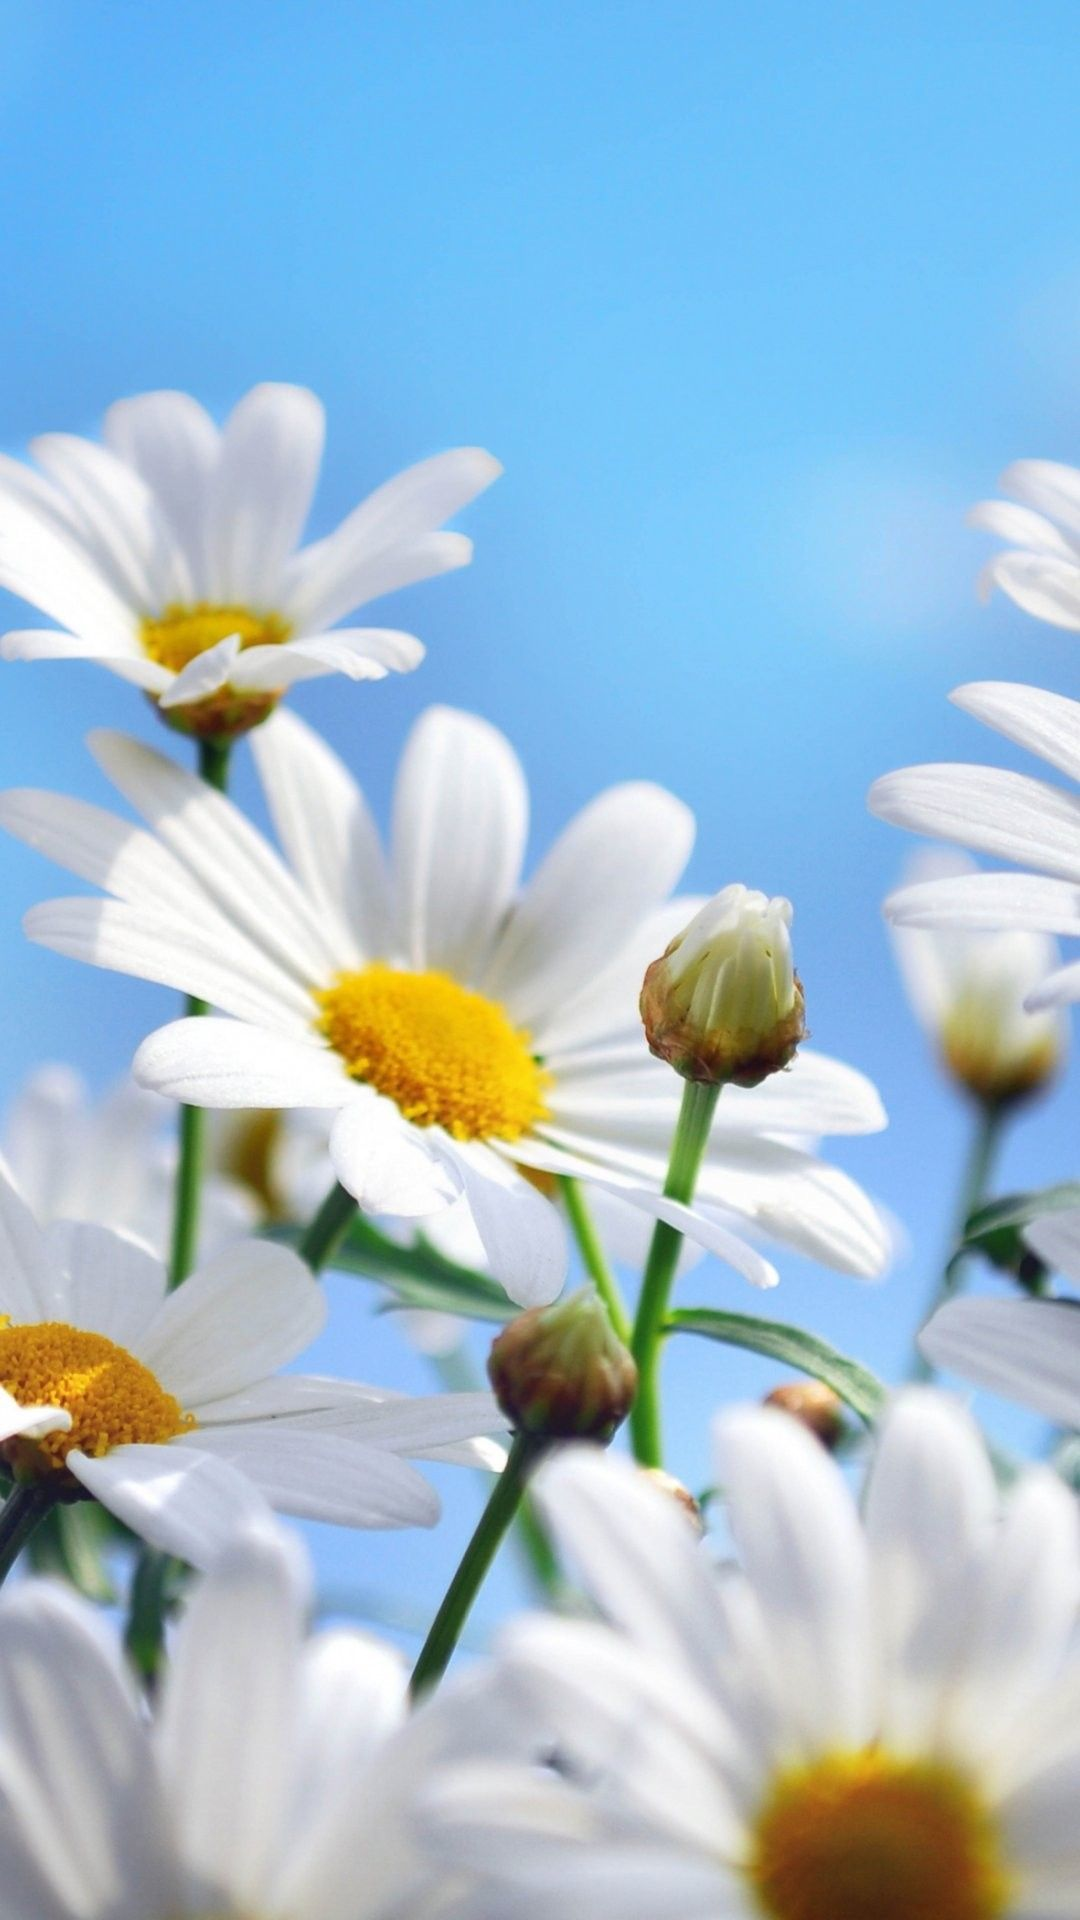 Daisies HD iPhone 6 Plus Wallpaper 19740 Flowers iPhone